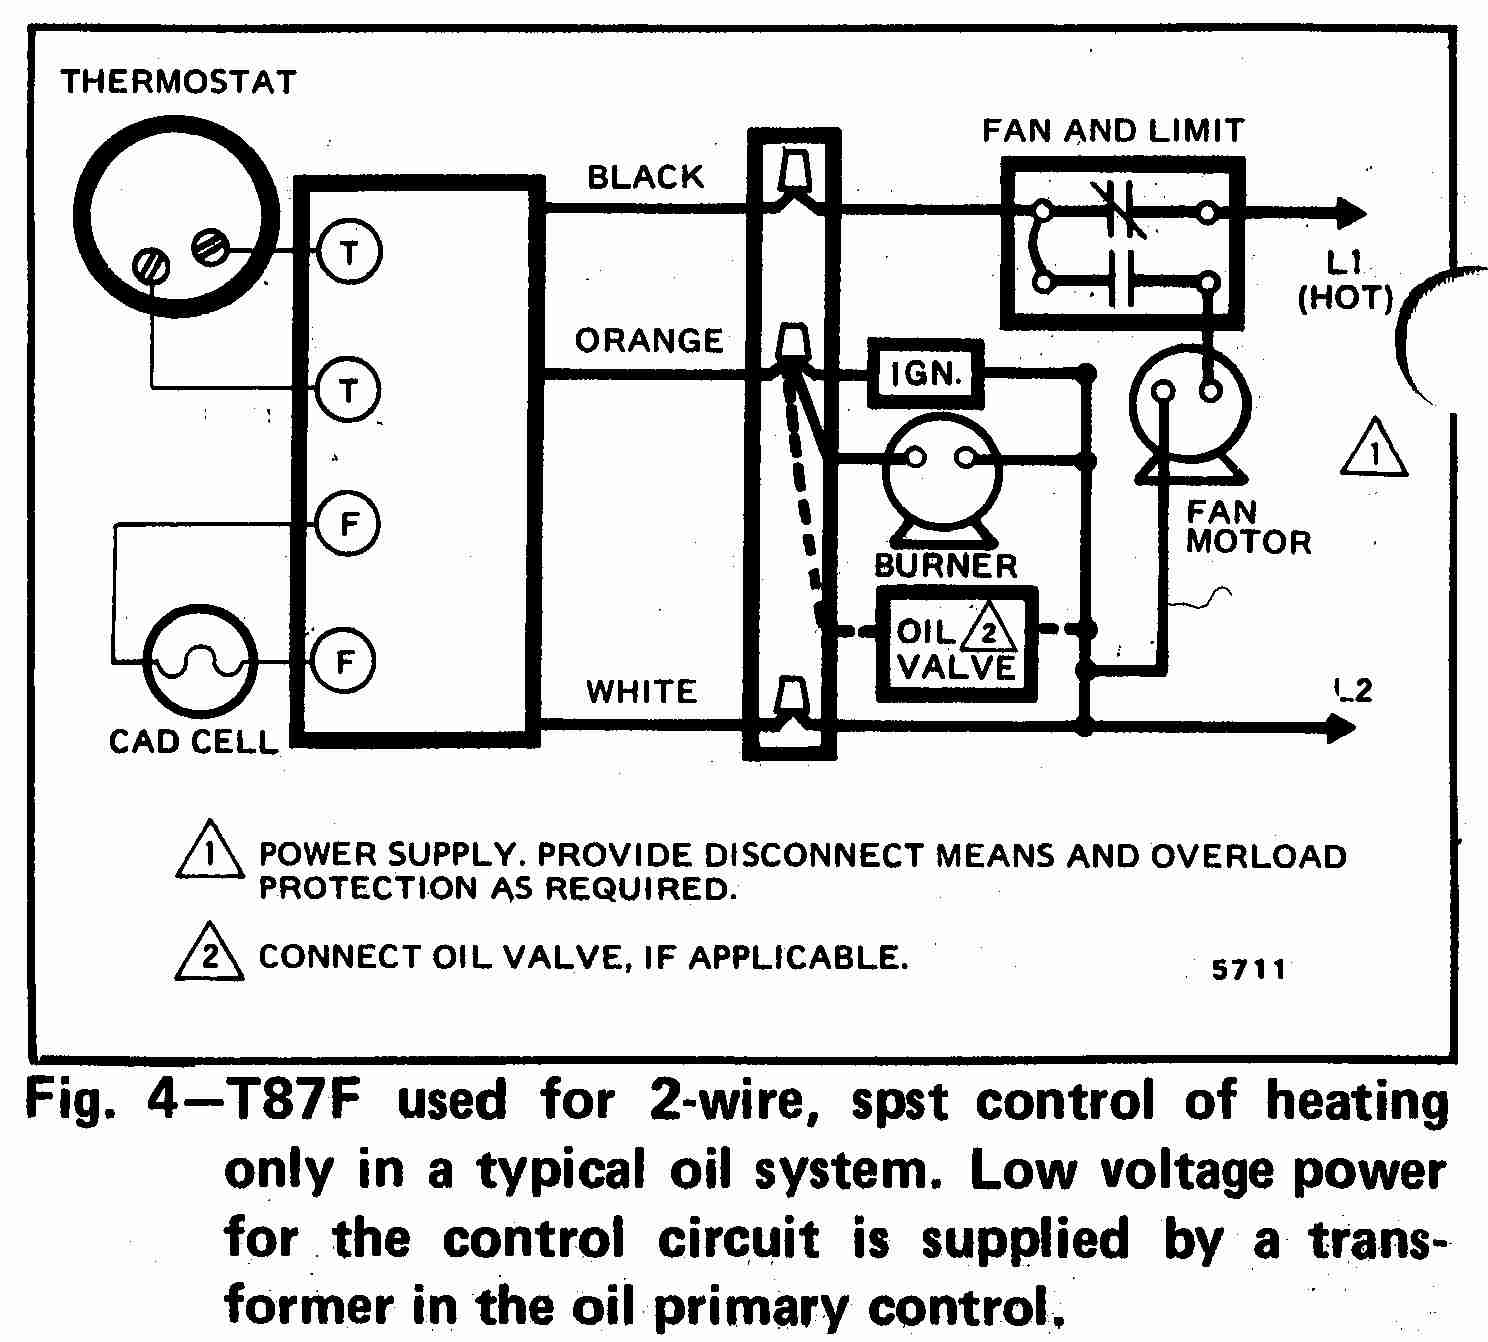 room thermostat wiring diagrams for hvac systems ac thermostat wiring diagram honeywell t87f thermostat wiring diagram for 2 wire, spst control of heating only in